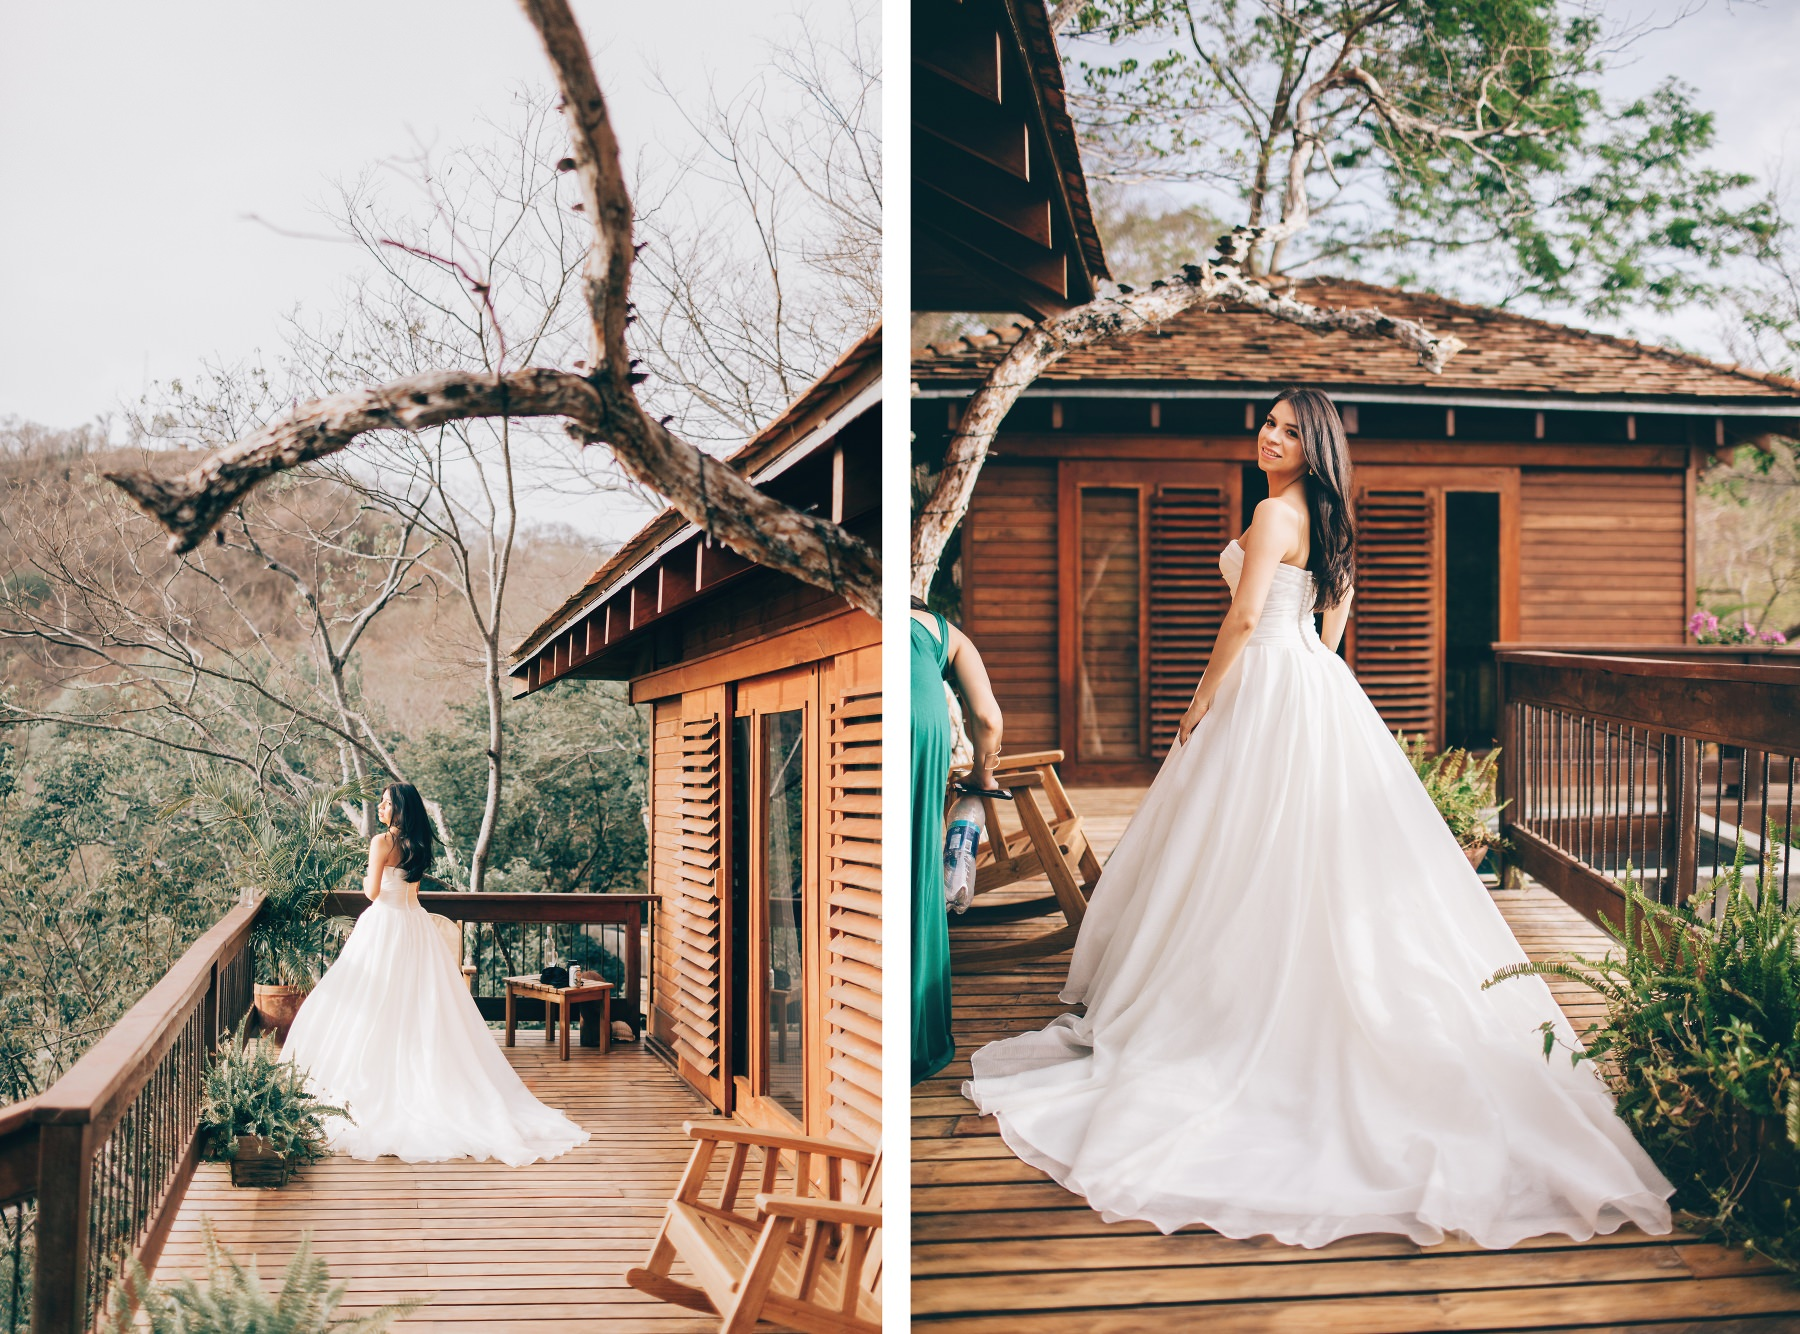 Photography of a bride and her wedding dress- destination wedding Nicaragua